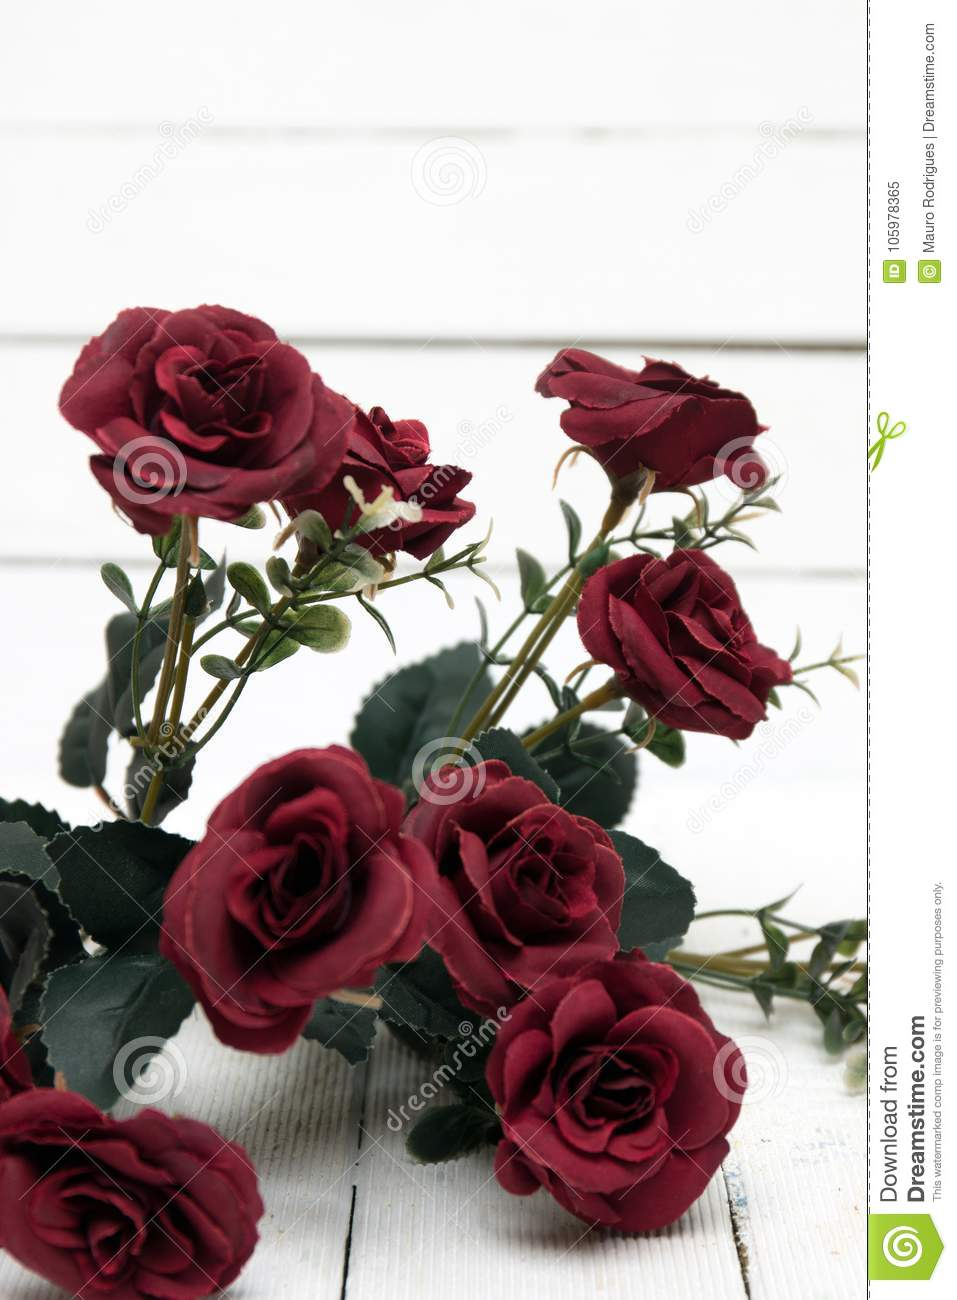 Fake bouquet of red roses isolated on a white background stock close view of fake bouquet of red roses isolated on a white wooden background izmirmasajfo